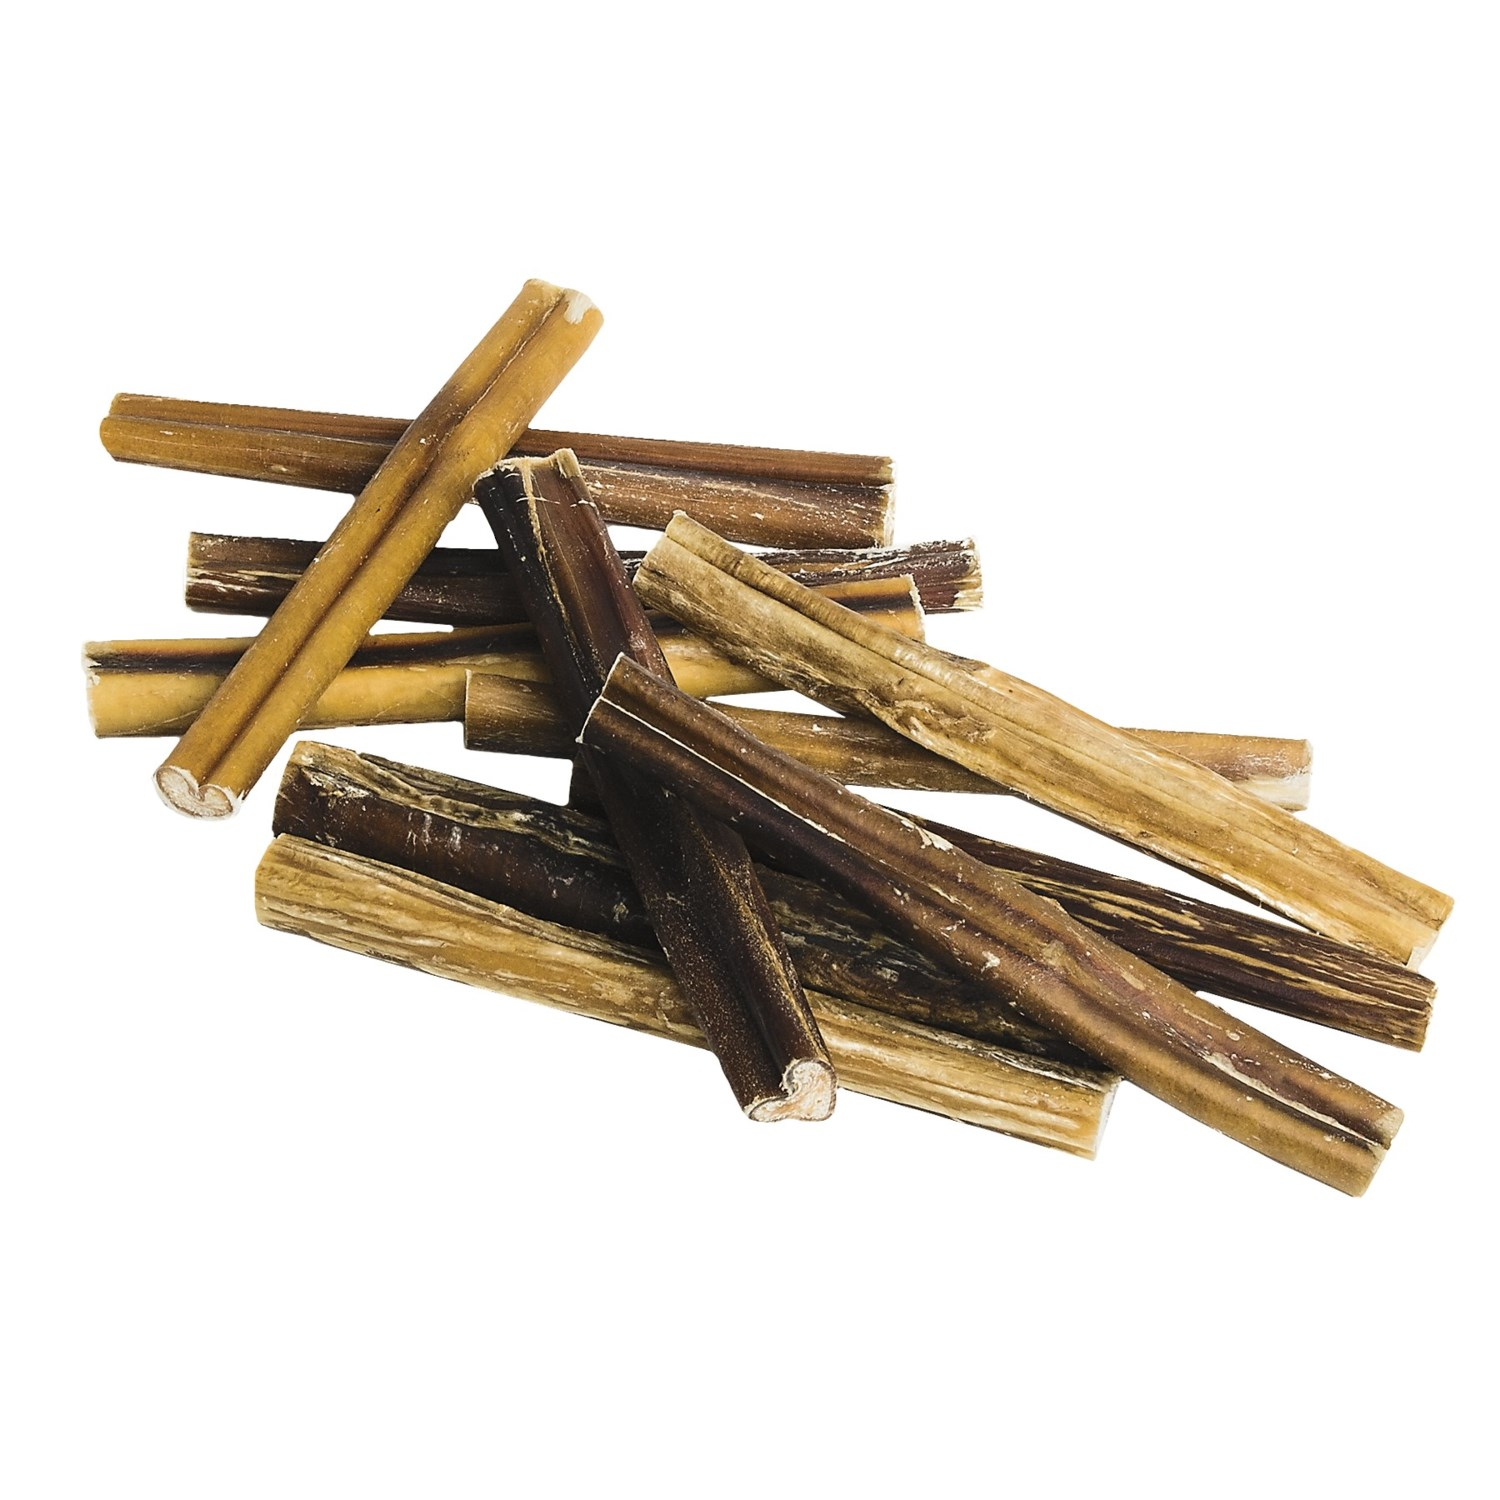 aussie naturals 6 bully stick dog chews 1 dozen 5312x save 50. Black Bedroom Furniture Sets. Home Design Ideas